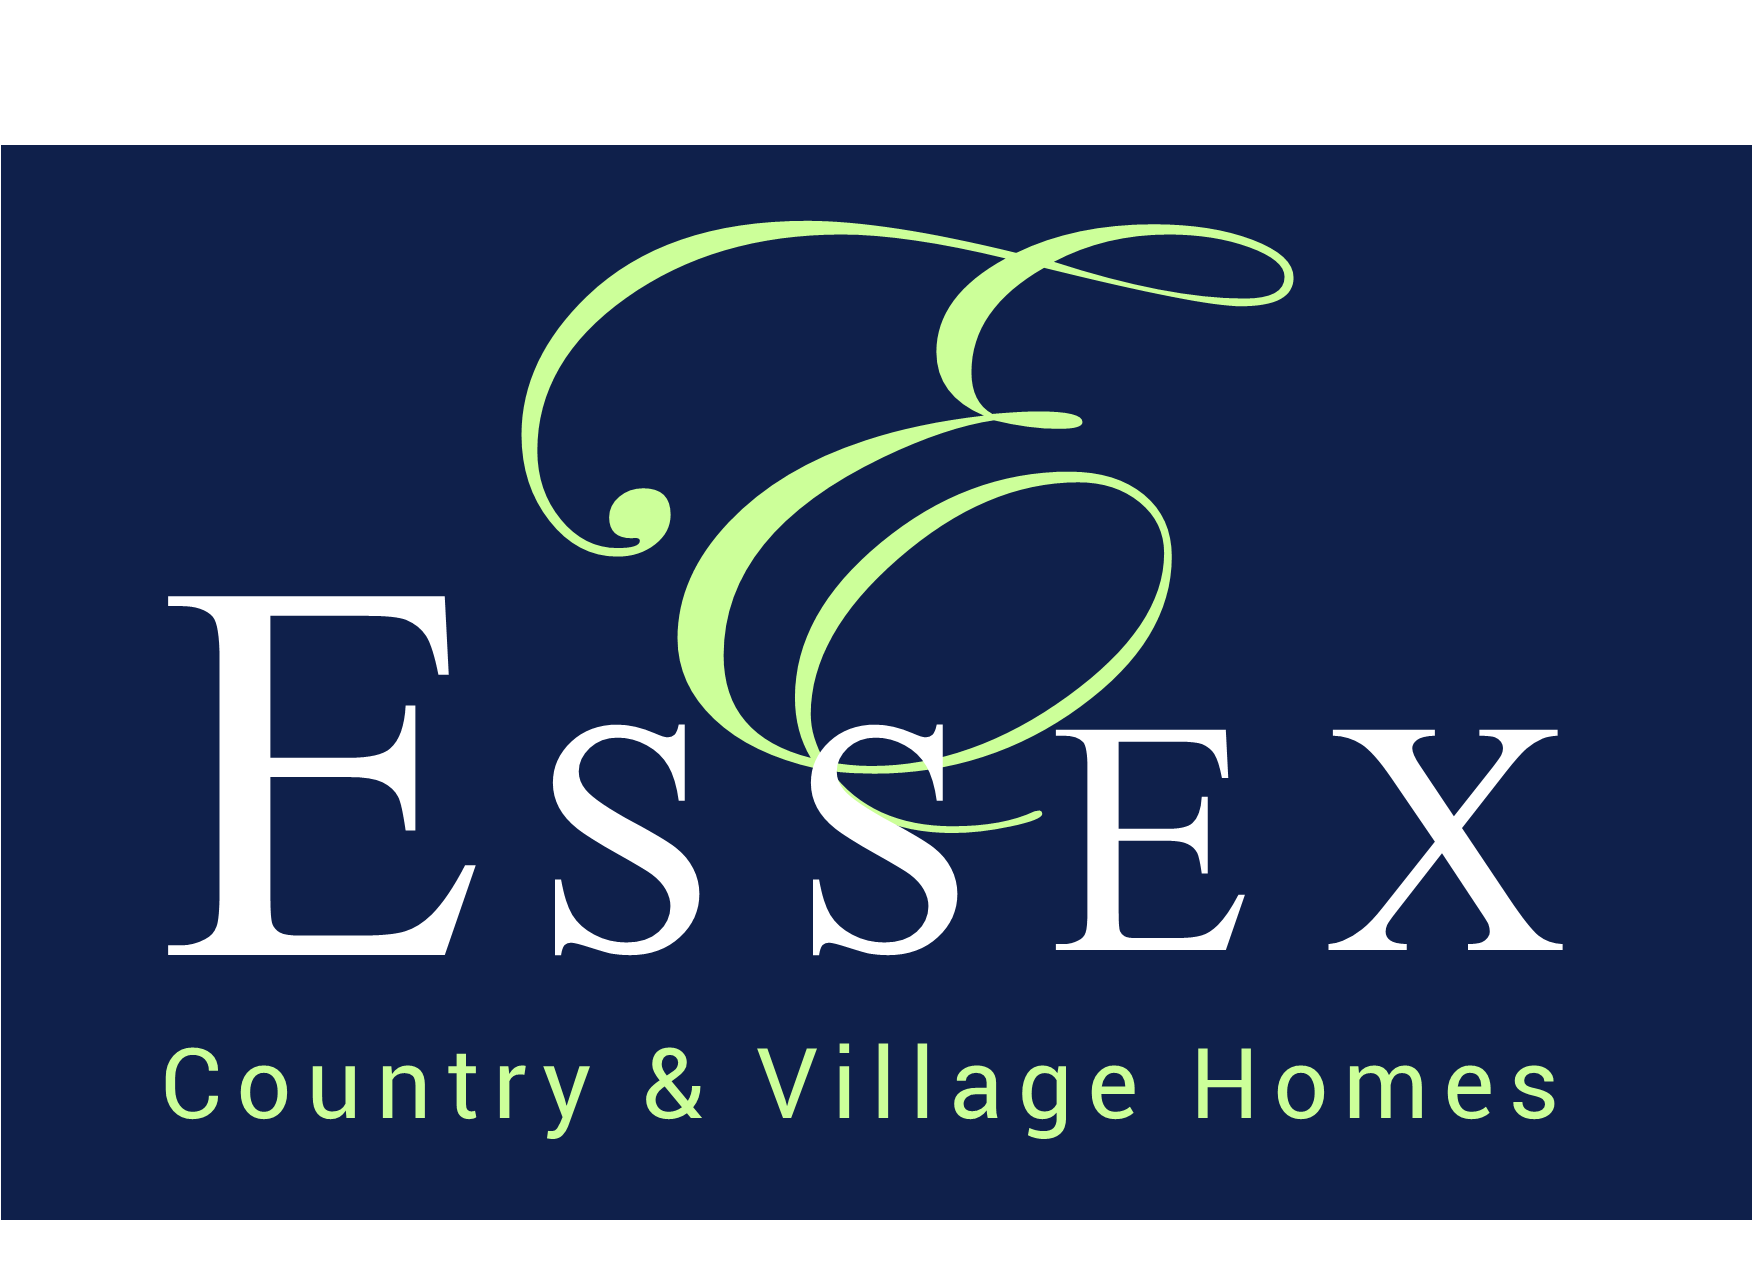 Essex Country & Village Homes